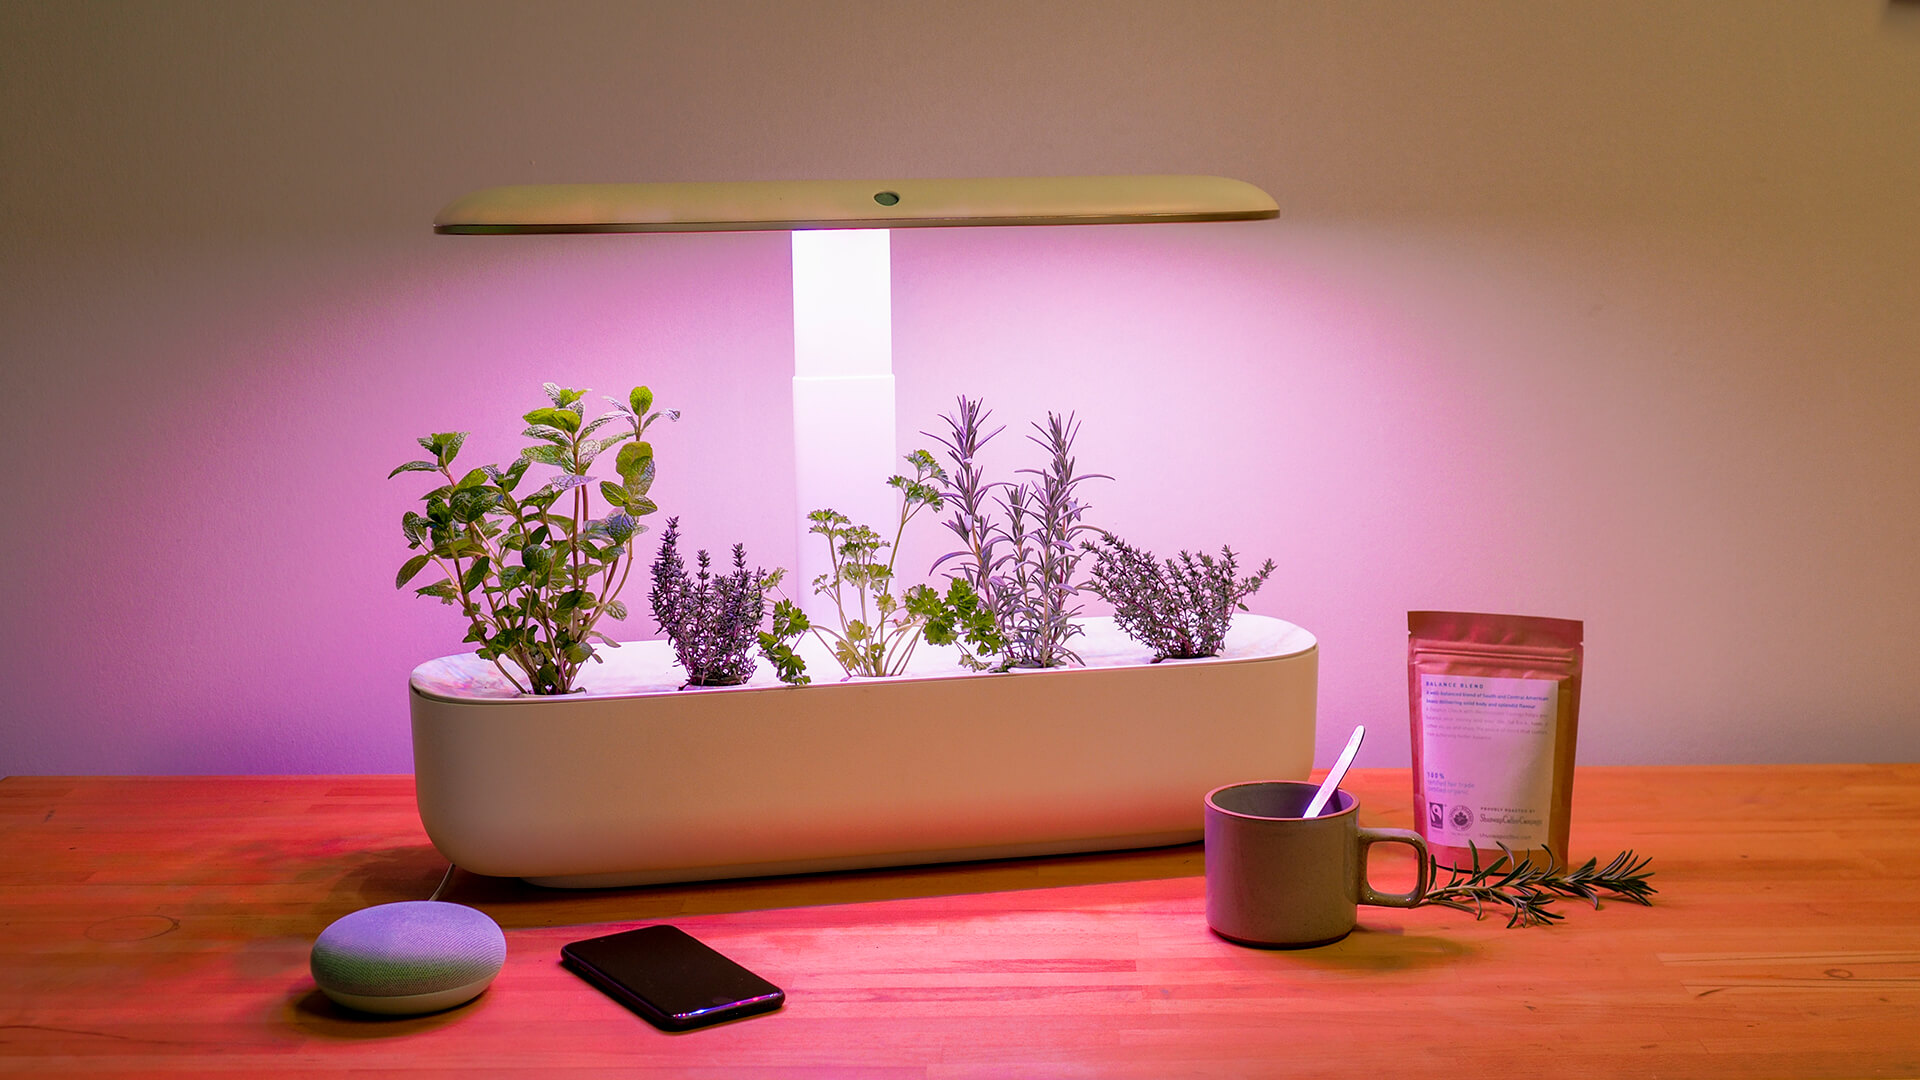 The AVA Smart Garden on a wooden countertop surrounded by a few smart devices, a short grey mug, and a small resealable bag of loose leaf tea. The AVA Smart Garden is lit purple and is growing an assortment of herbs.